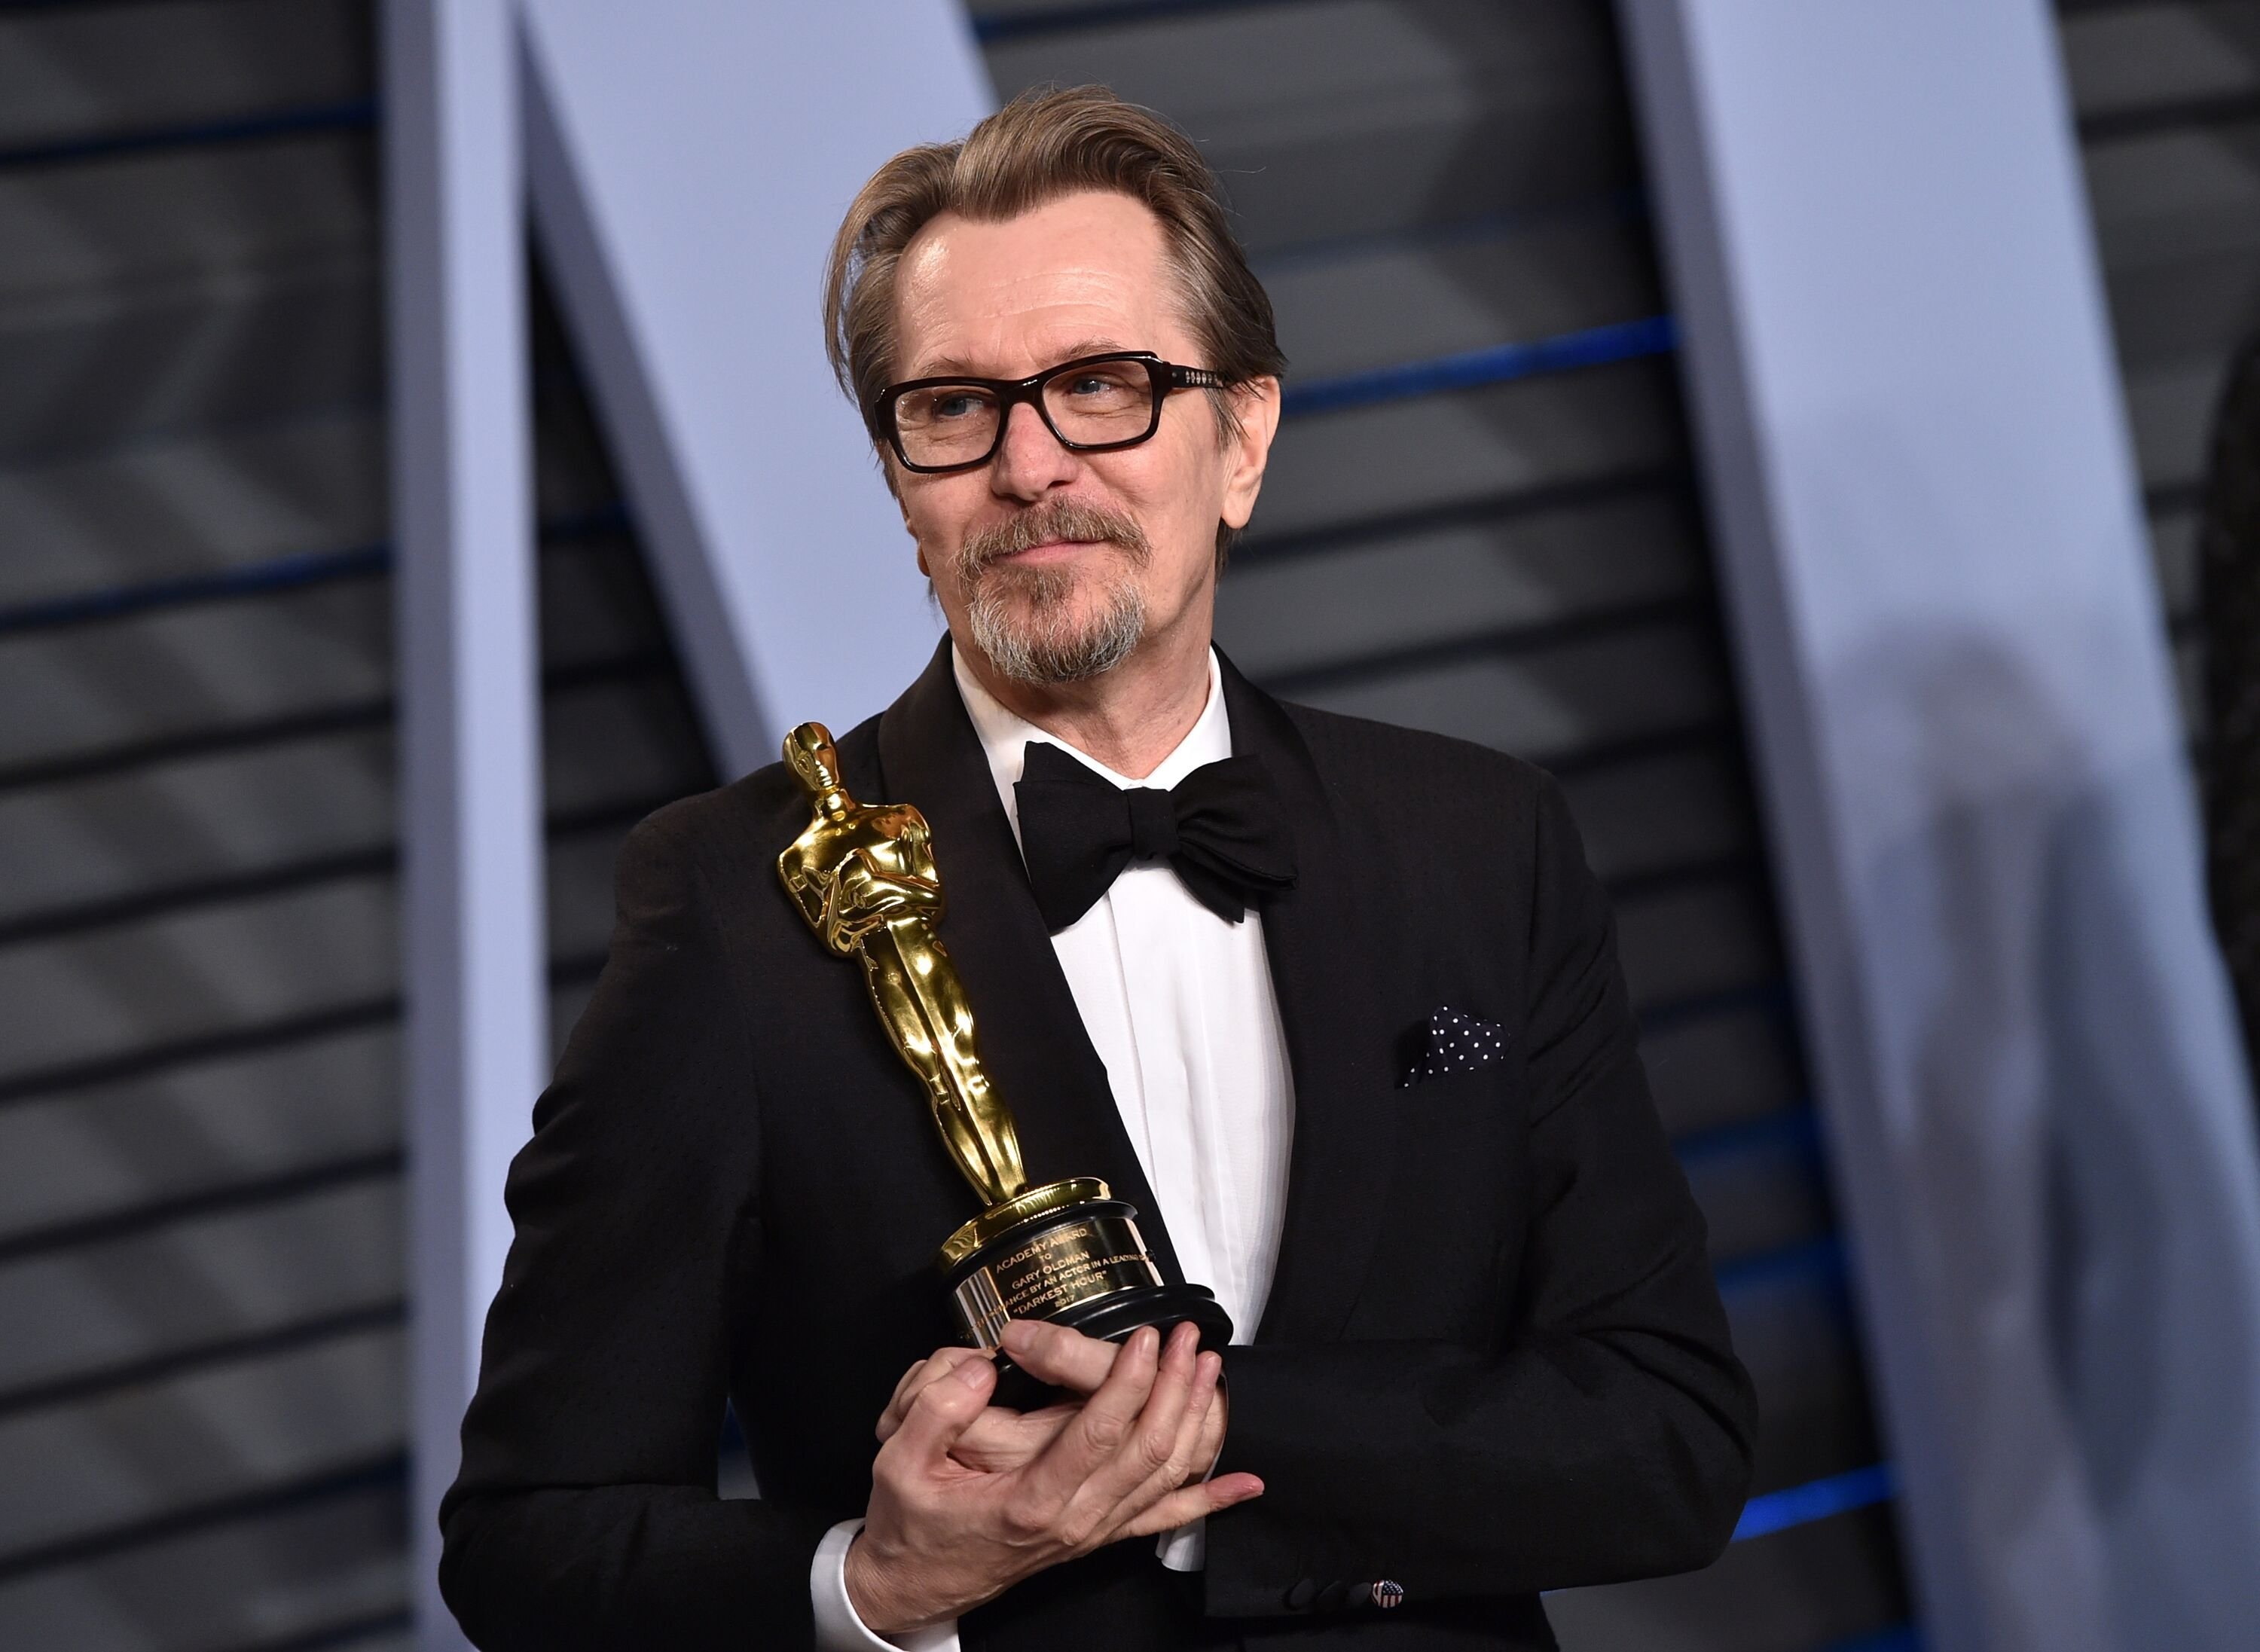 Gary Oldman attends the 2018 Vanity Fair Oscar. | Source: Getty Images